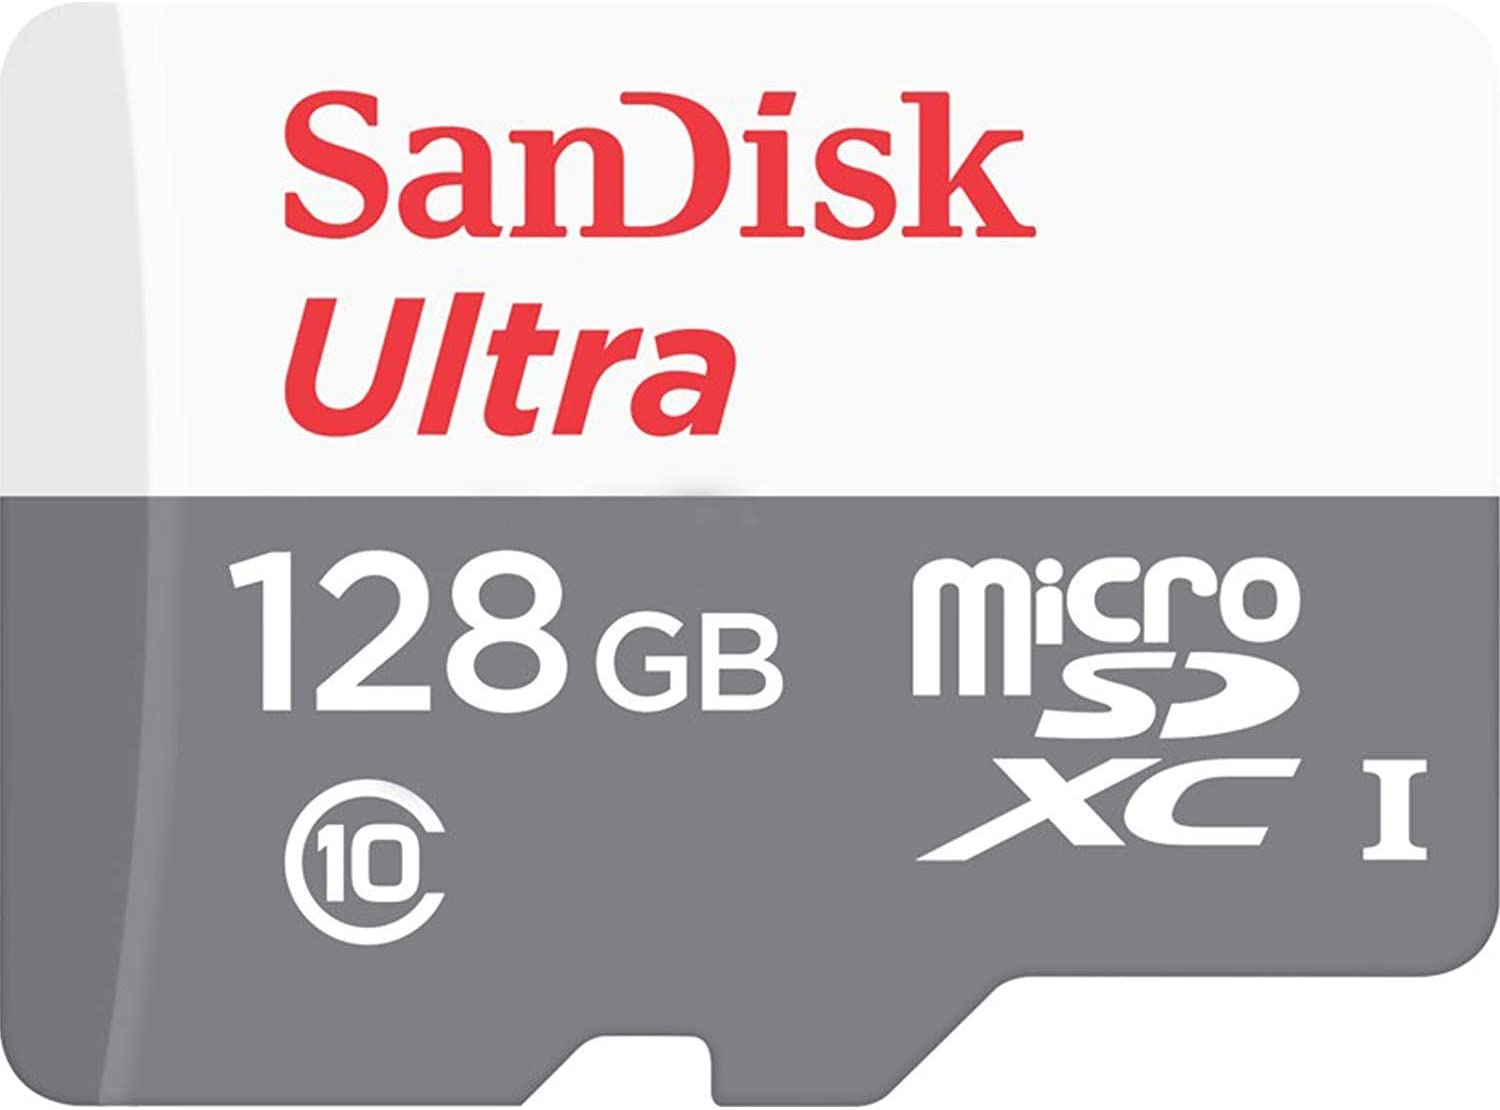 100MBs A1 U1 C10 Works with SanDisk SanDisk Ultra 128GB MicroSDXC Verified for Micromax Q4202 by SanFlash